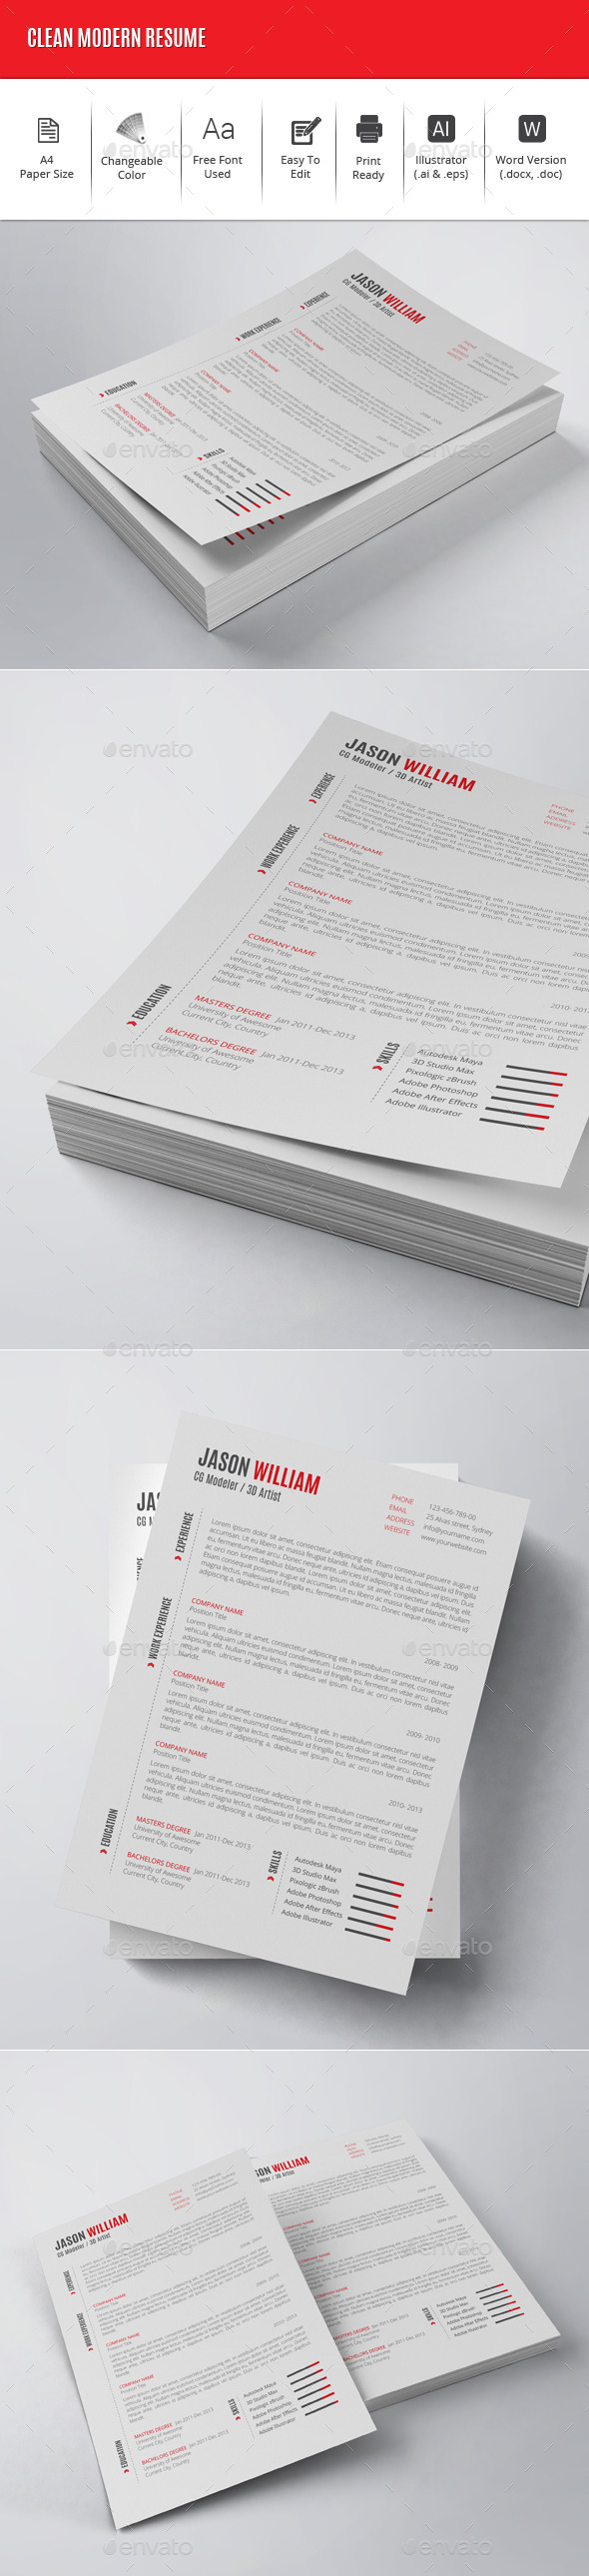 Clean Modern Resume - Resumes Stationery